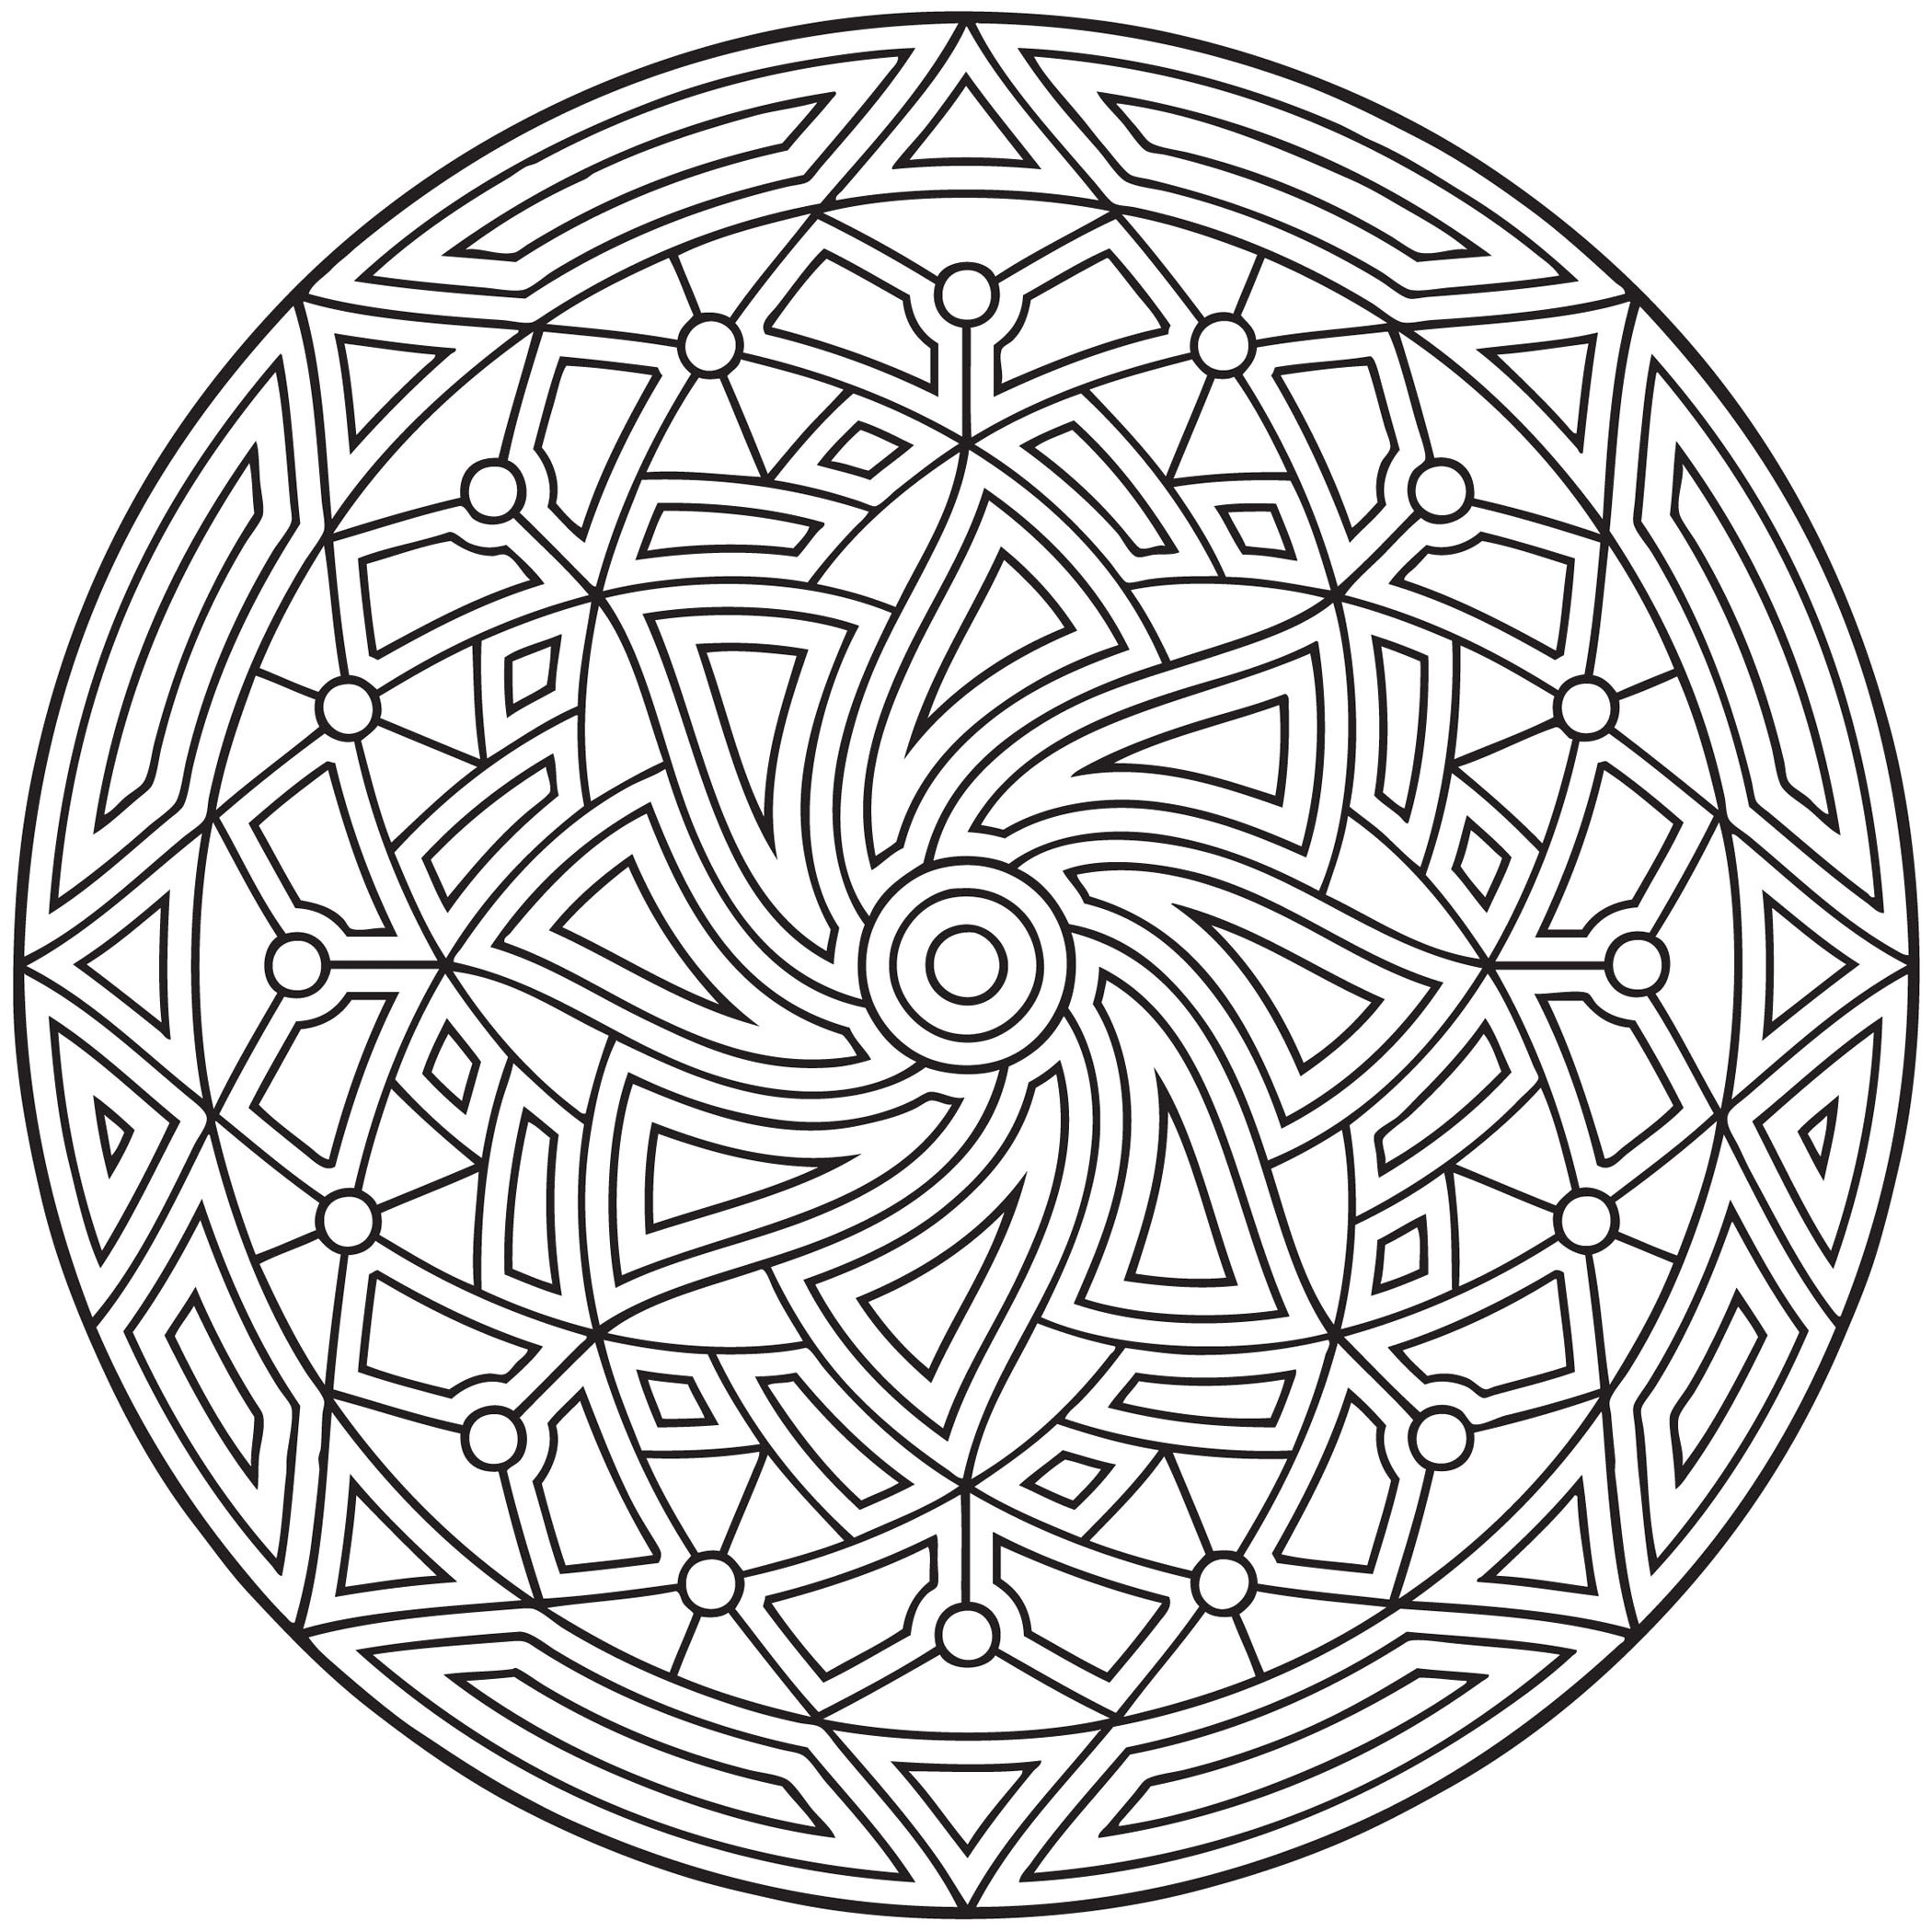 coloring pages for adults geometric - photo#13